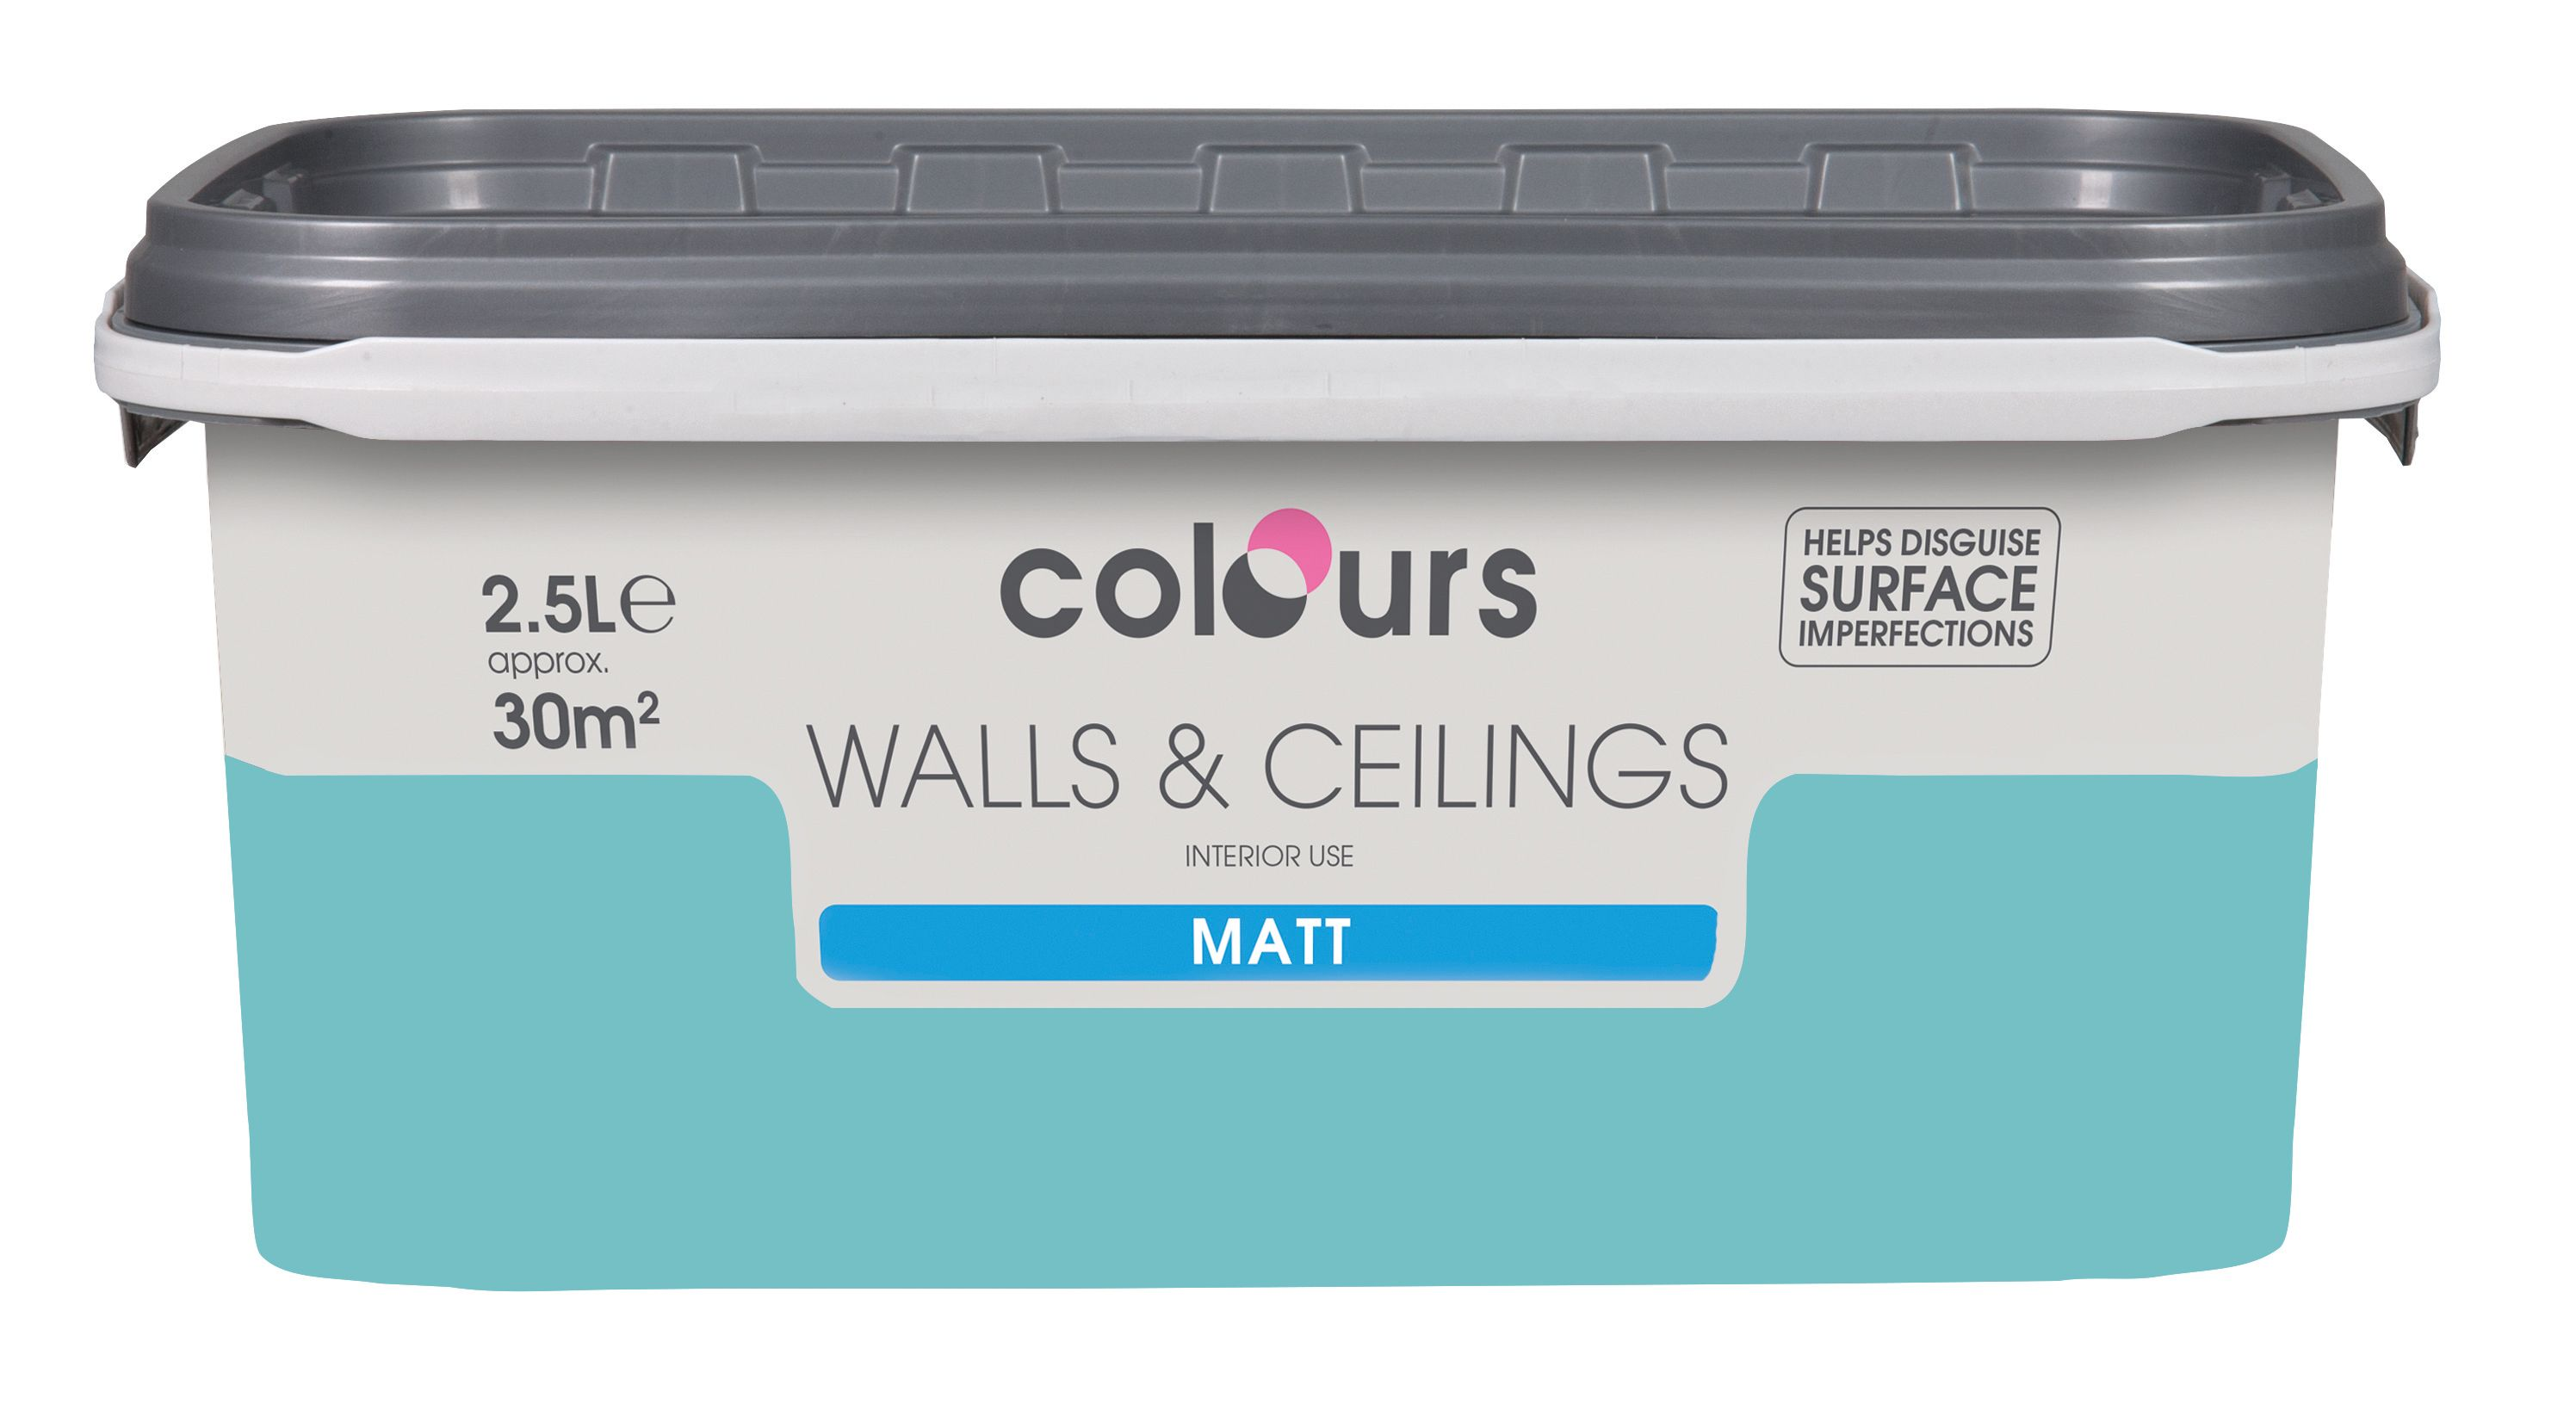 Colours Standard Chance Matt Emulsion Paint 2.5L | Departments | DIY ...